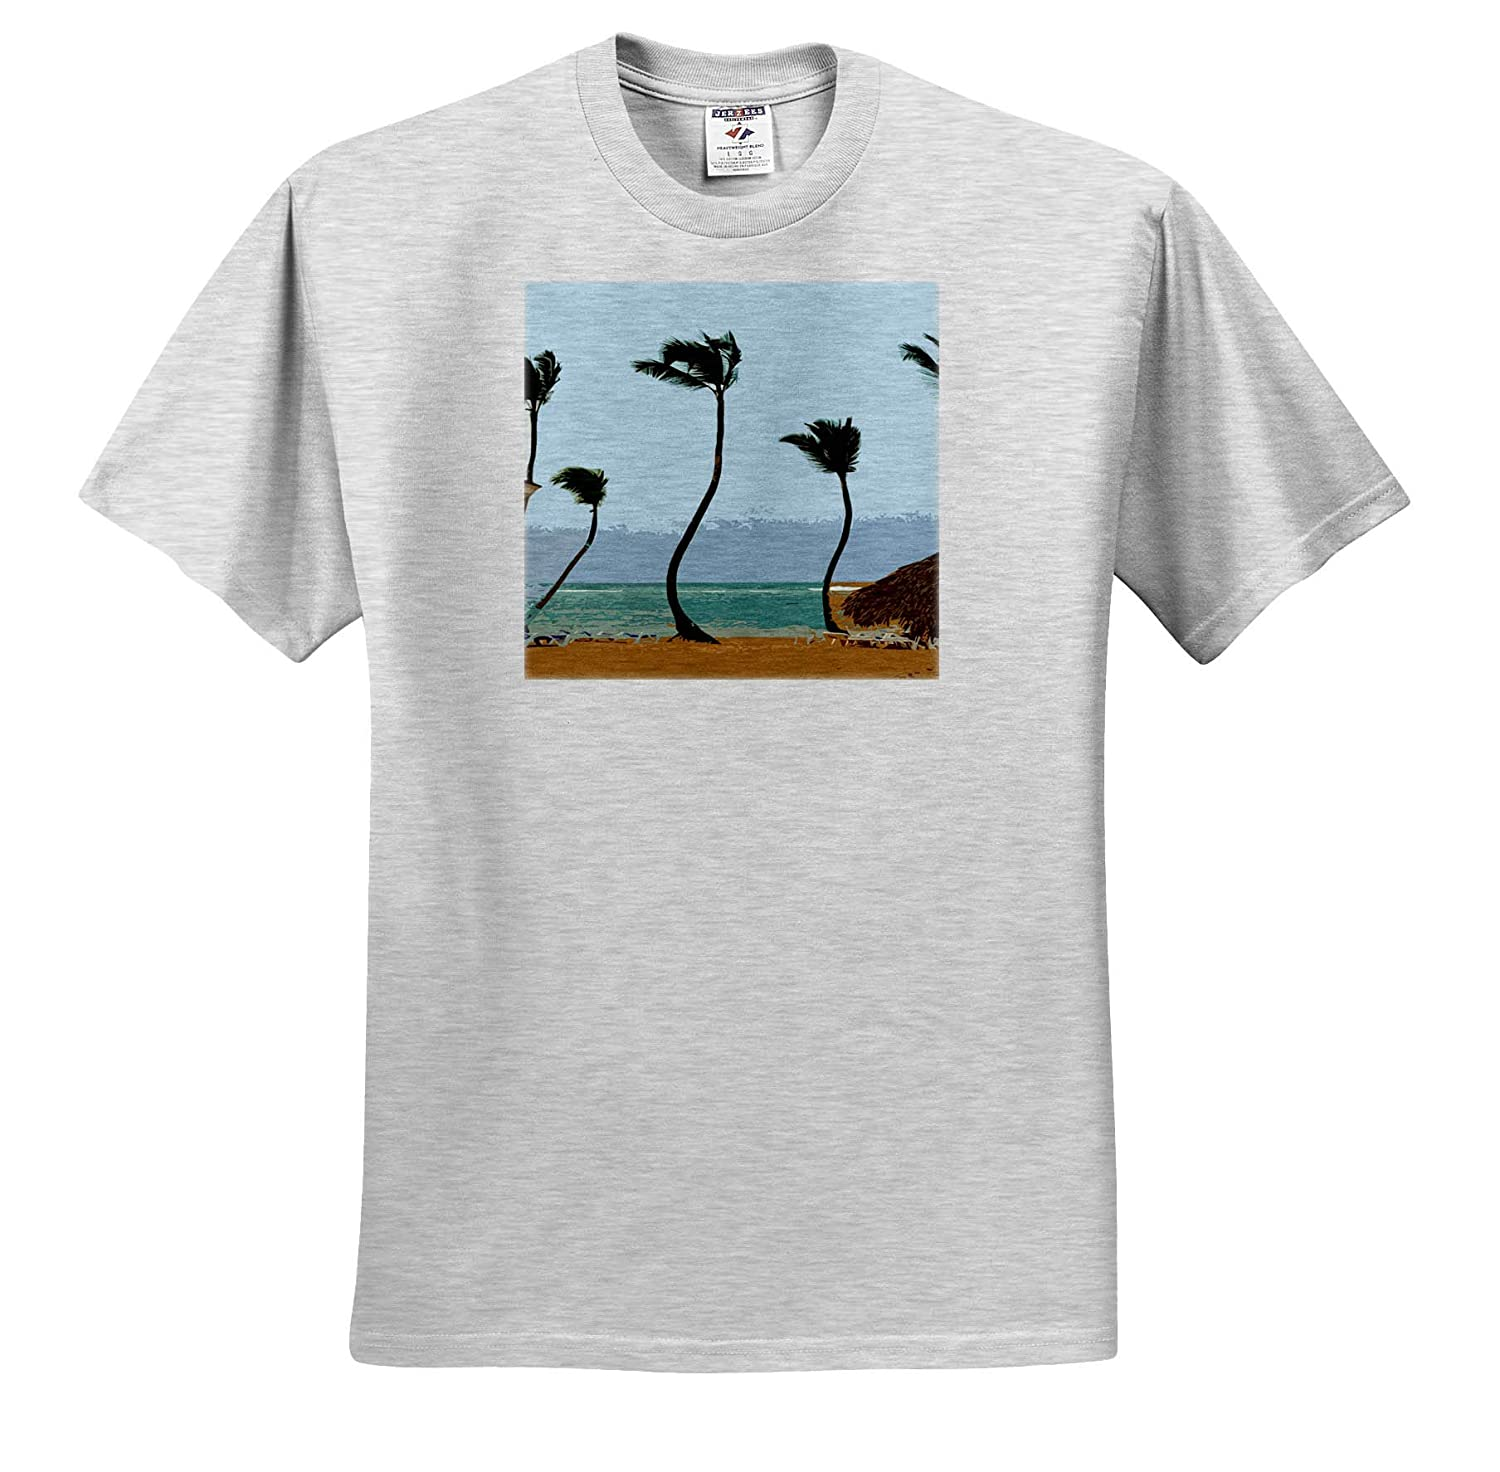 3dRose Lens Art by Florene Image of Swaying Palms in Abstract On The Beach T-Shirts Tree Art